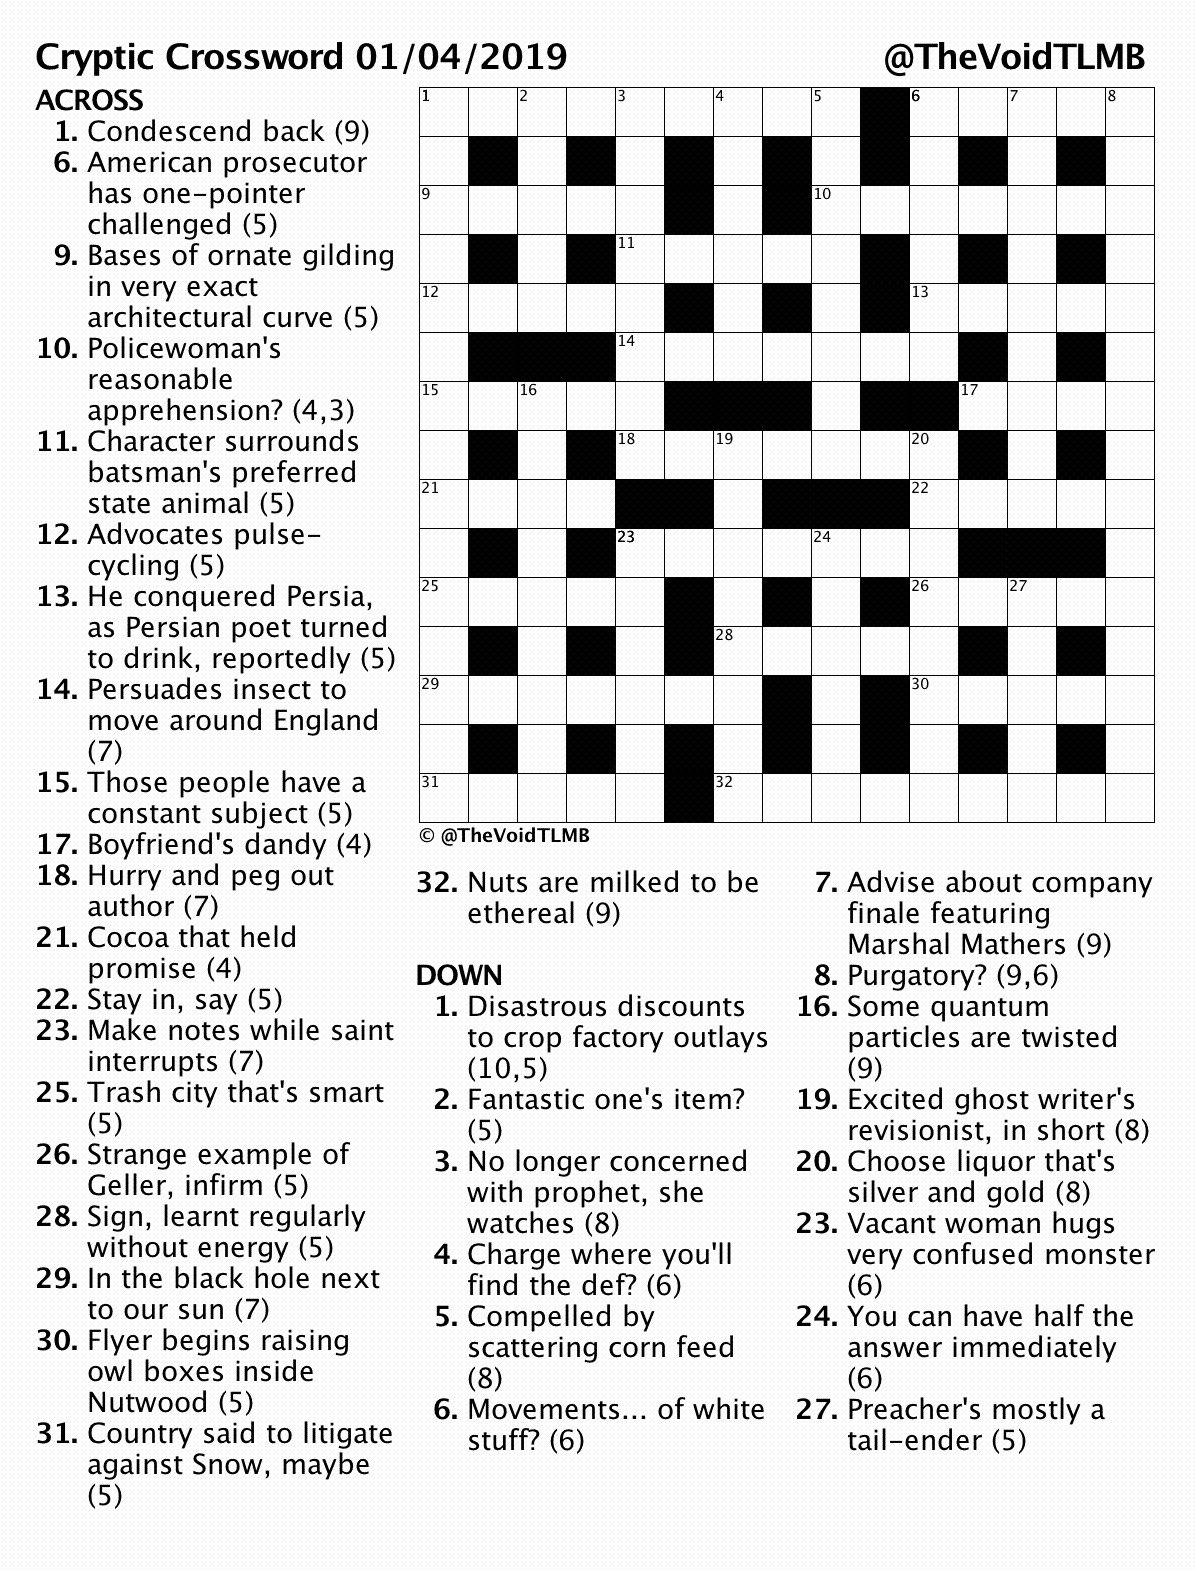 image relating to Printable Cryptic Crosswords identify Cryptic Crossword April 2019 TLMB